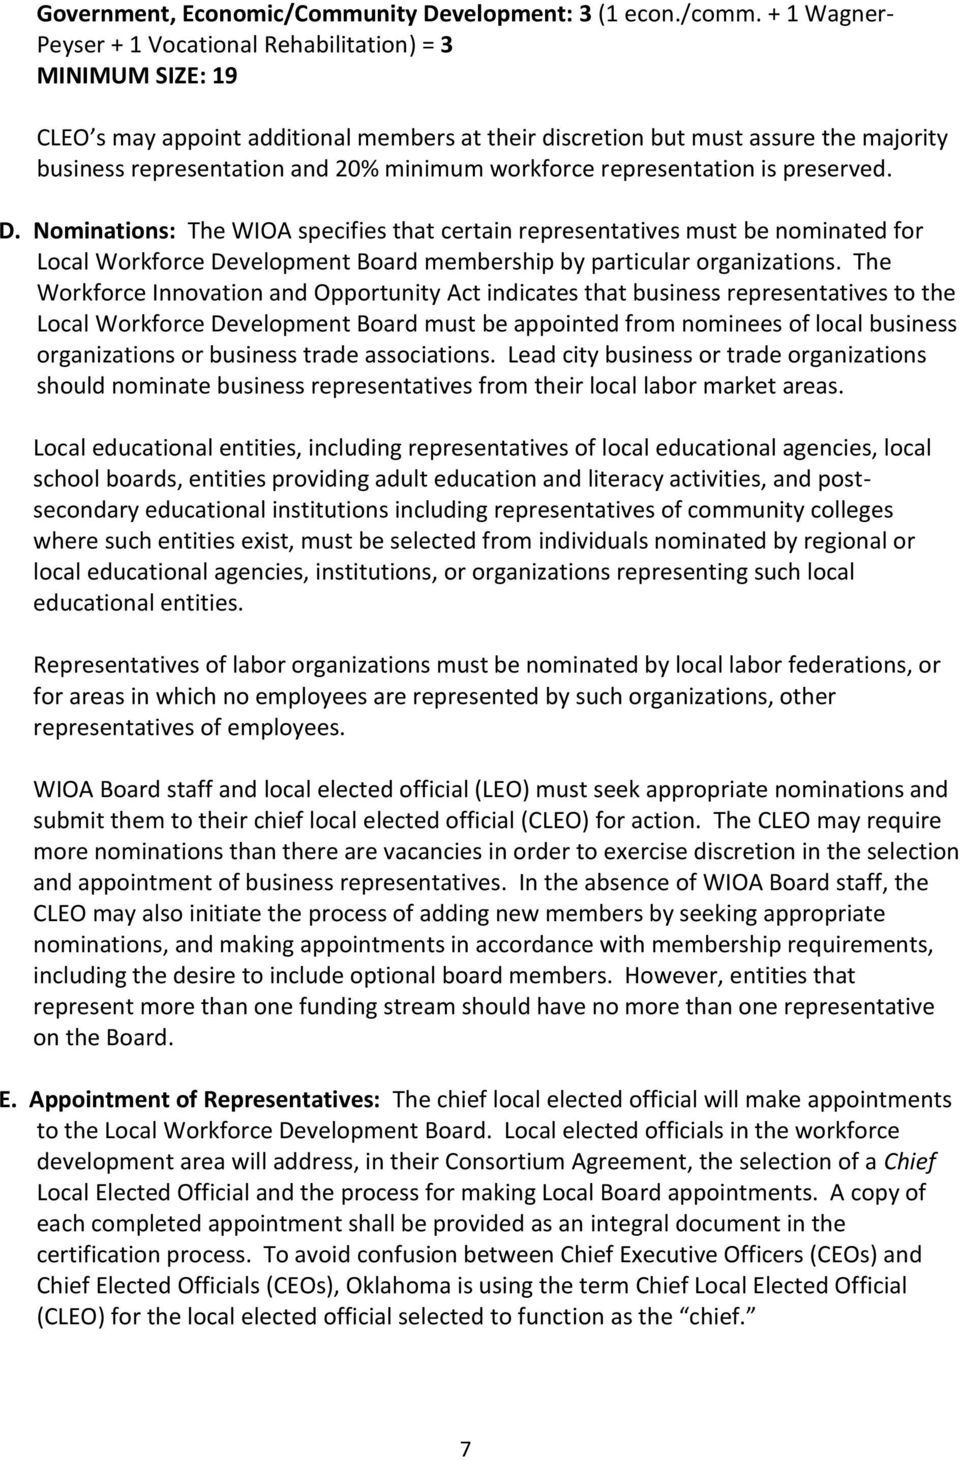 workforce representation is preserved. D. Nominations: The WIOA specifies that certain representatives must be nominated for Local Workforce Development Board membership by particular organizations.